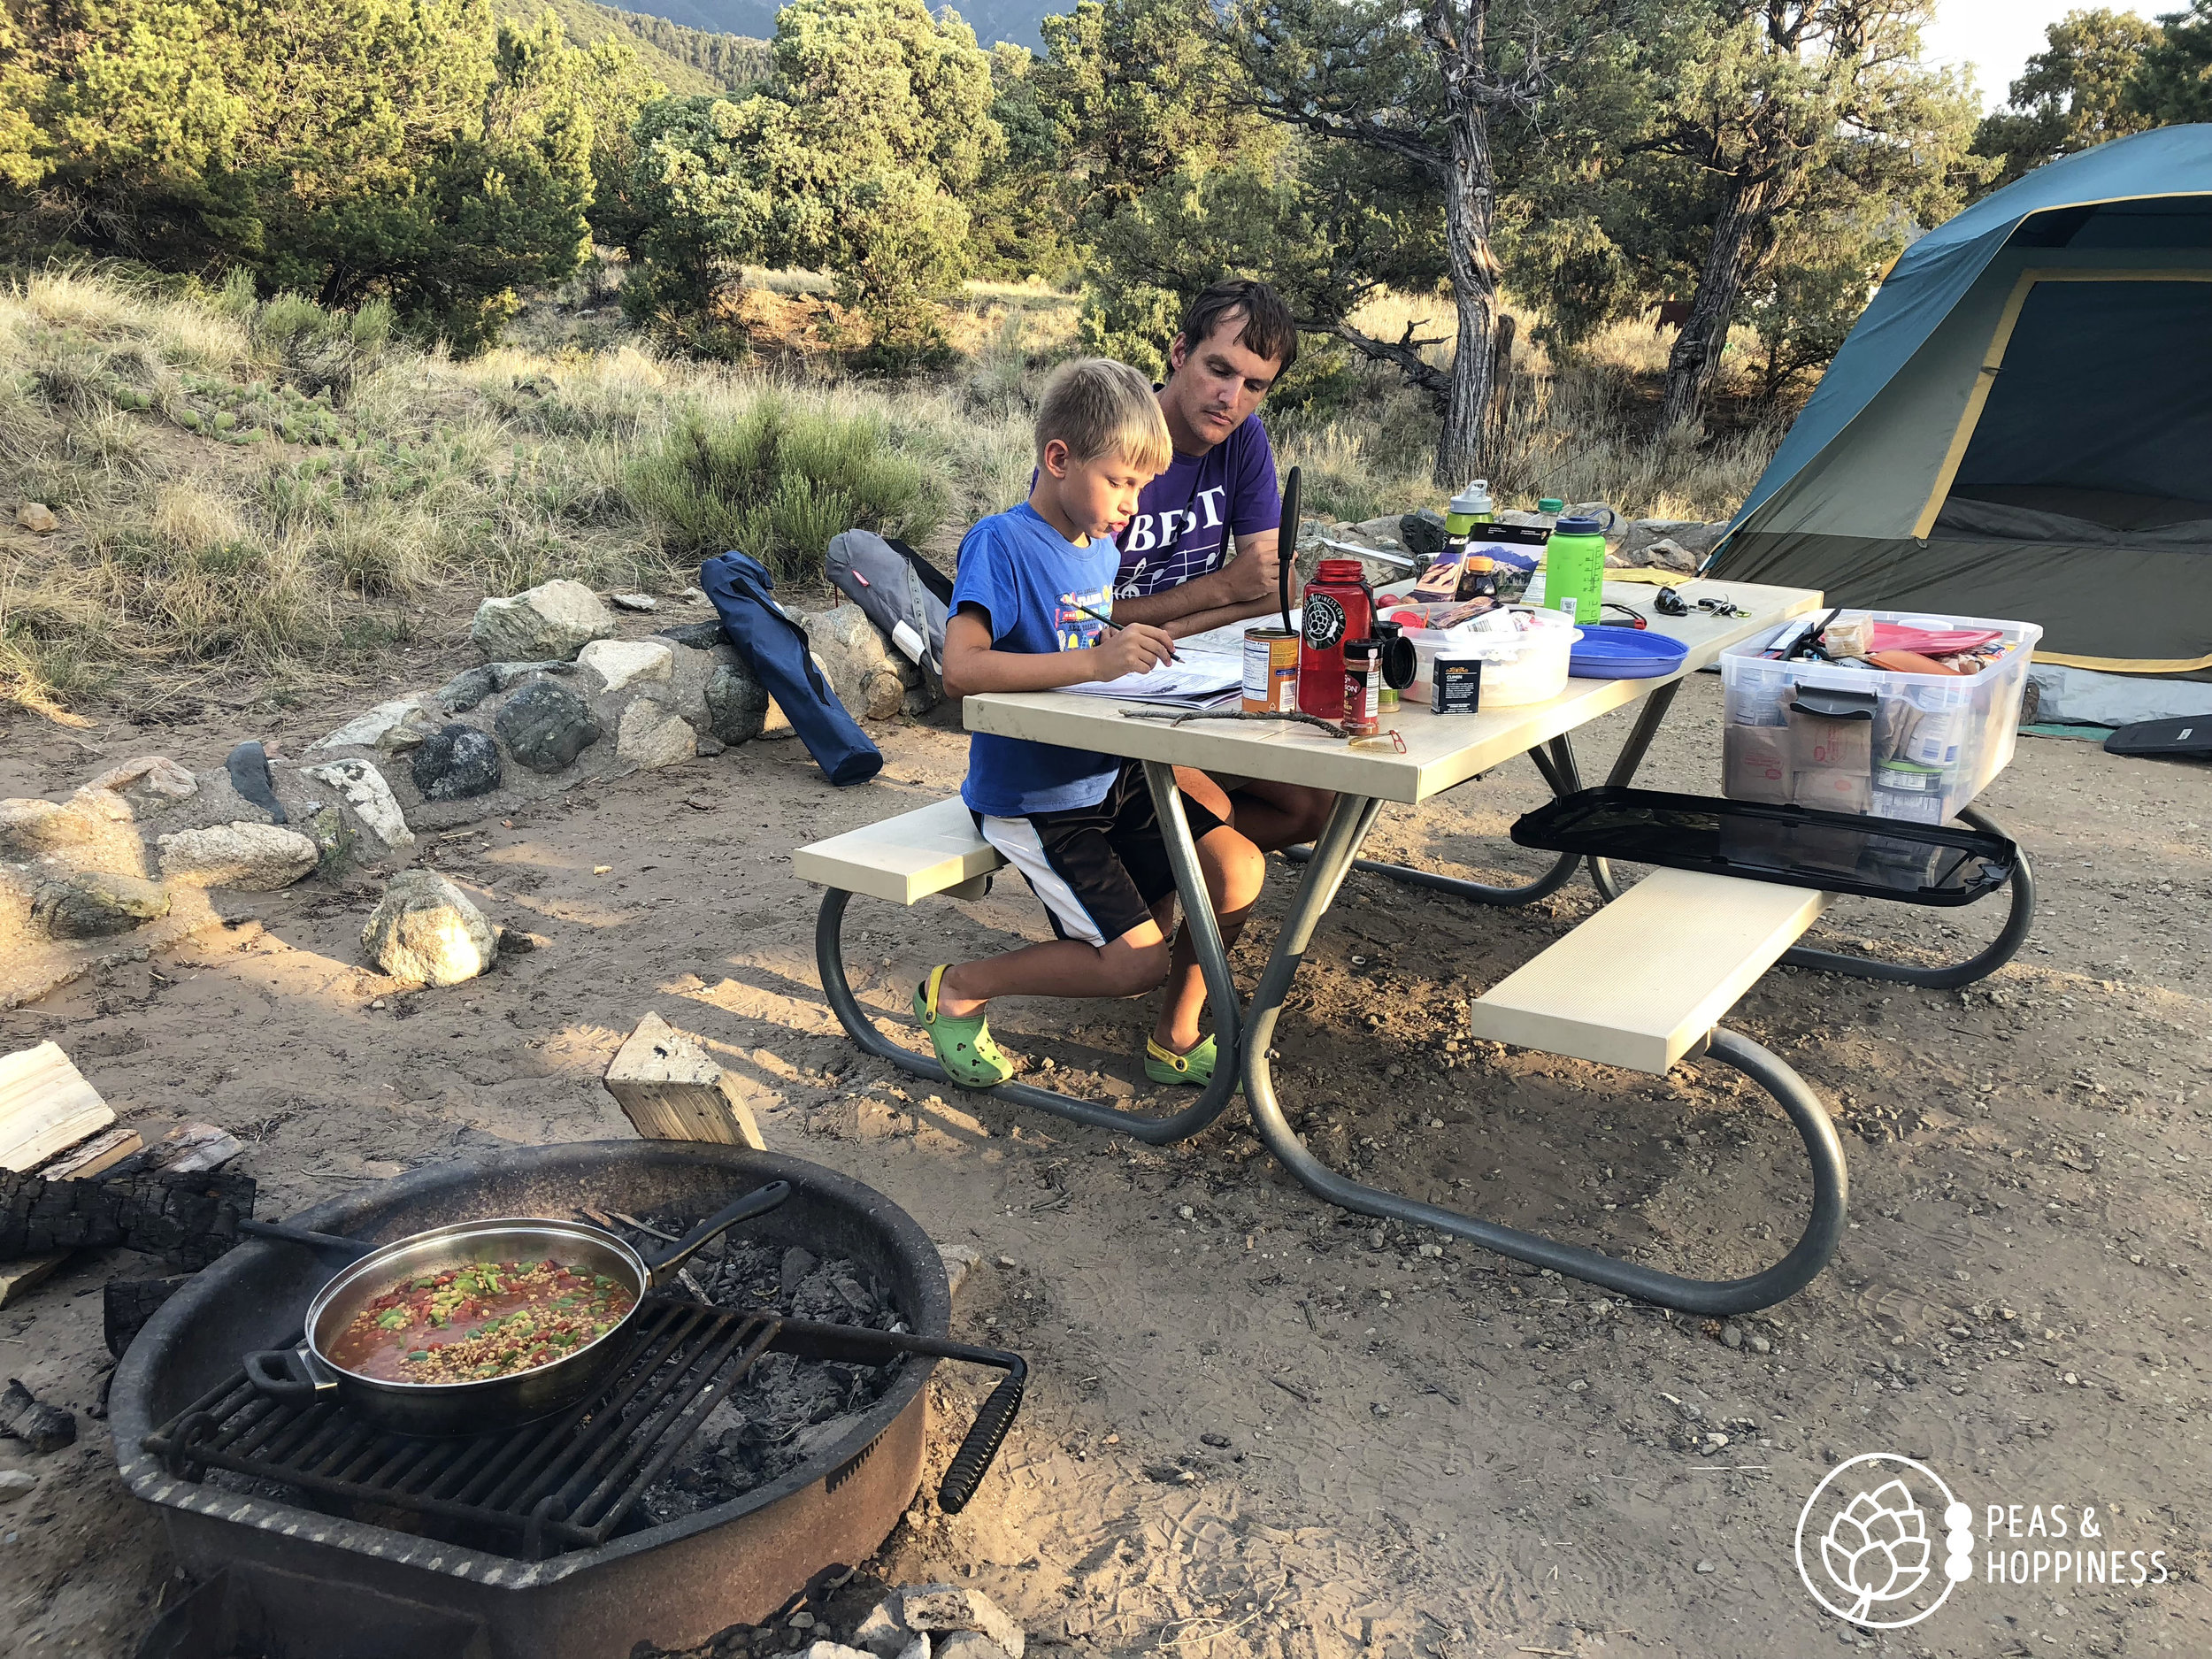 Working on Jonah's Junior Ranger book while Lentil Frito Pie cooks over the fire. Great Sand Dunes National Park.